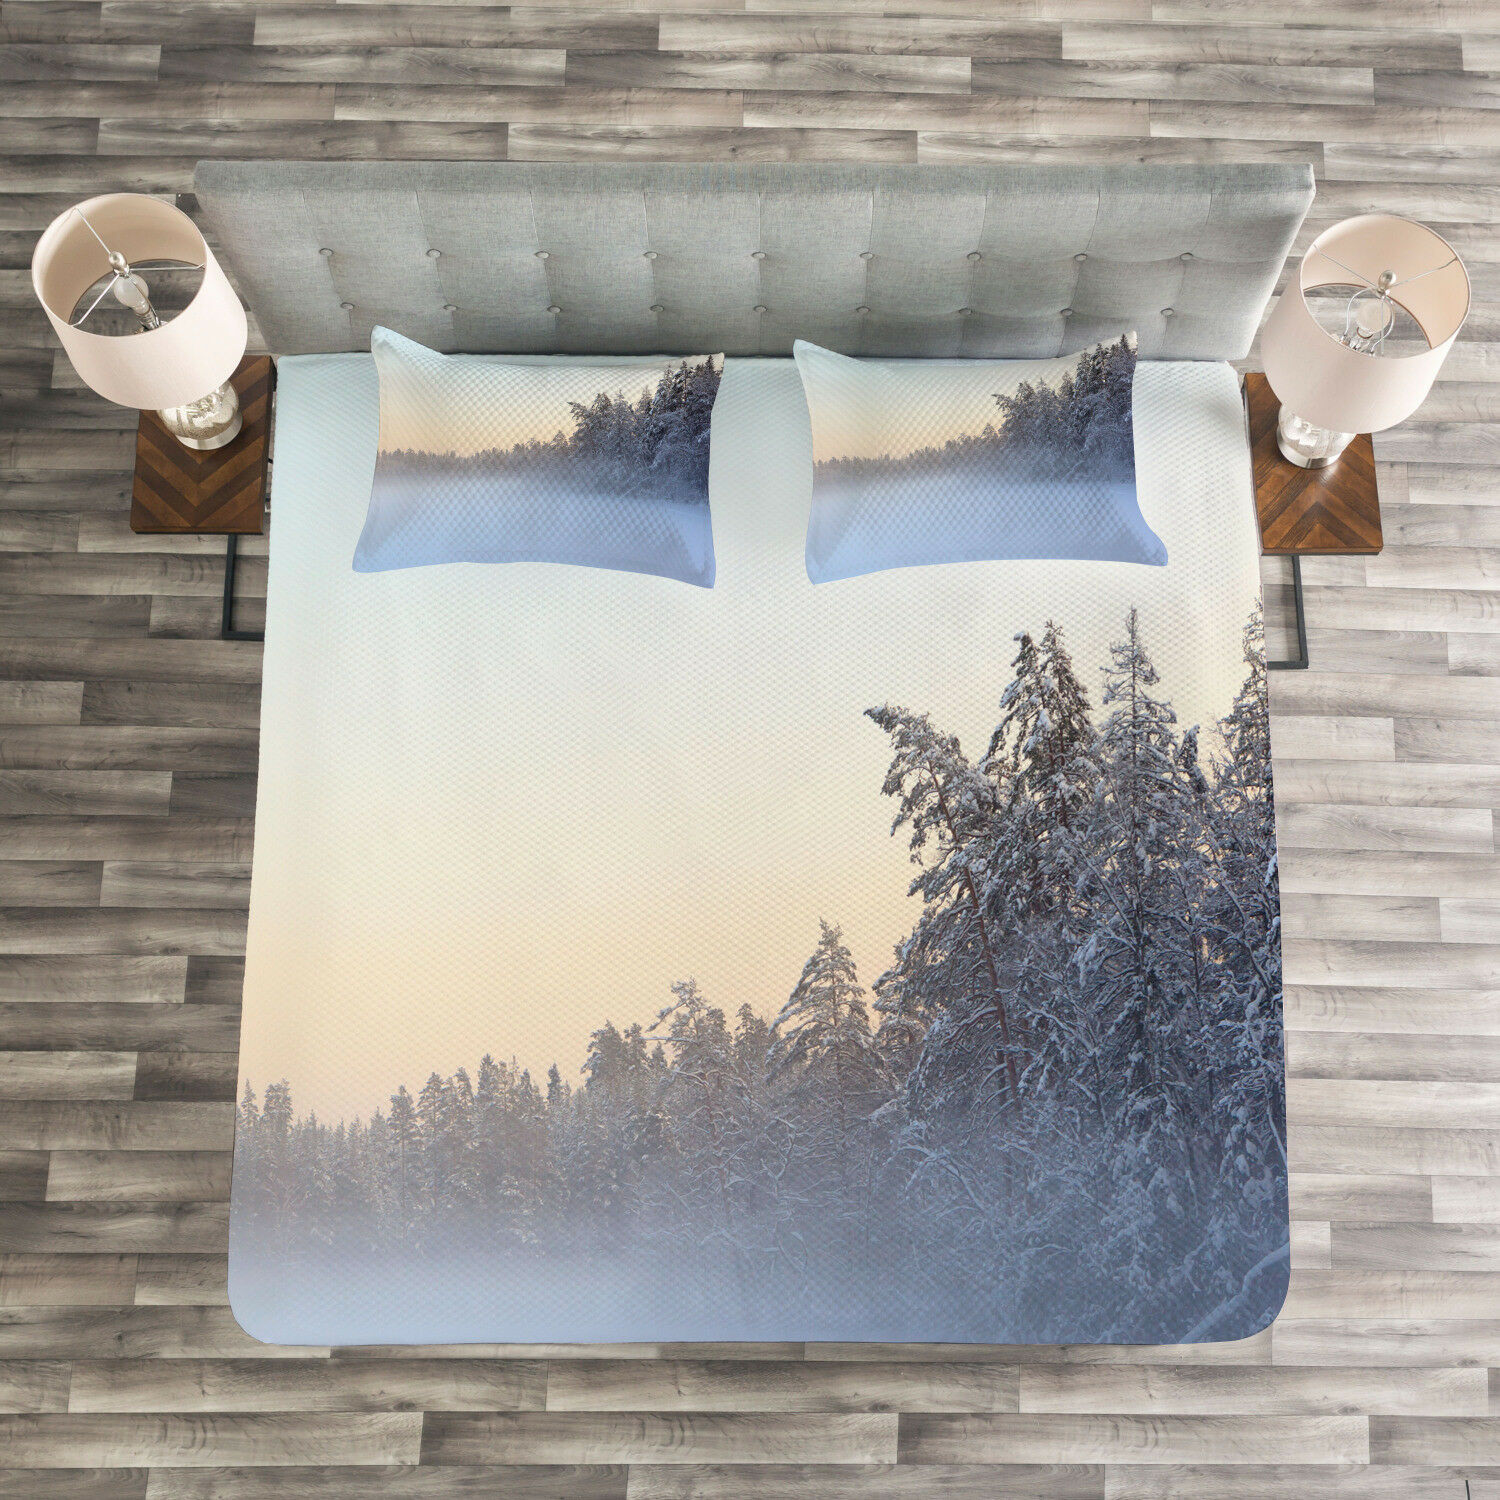 Winter Quilted Bedspread & Pillow Shams Set, Frozen Lake in Woods Print